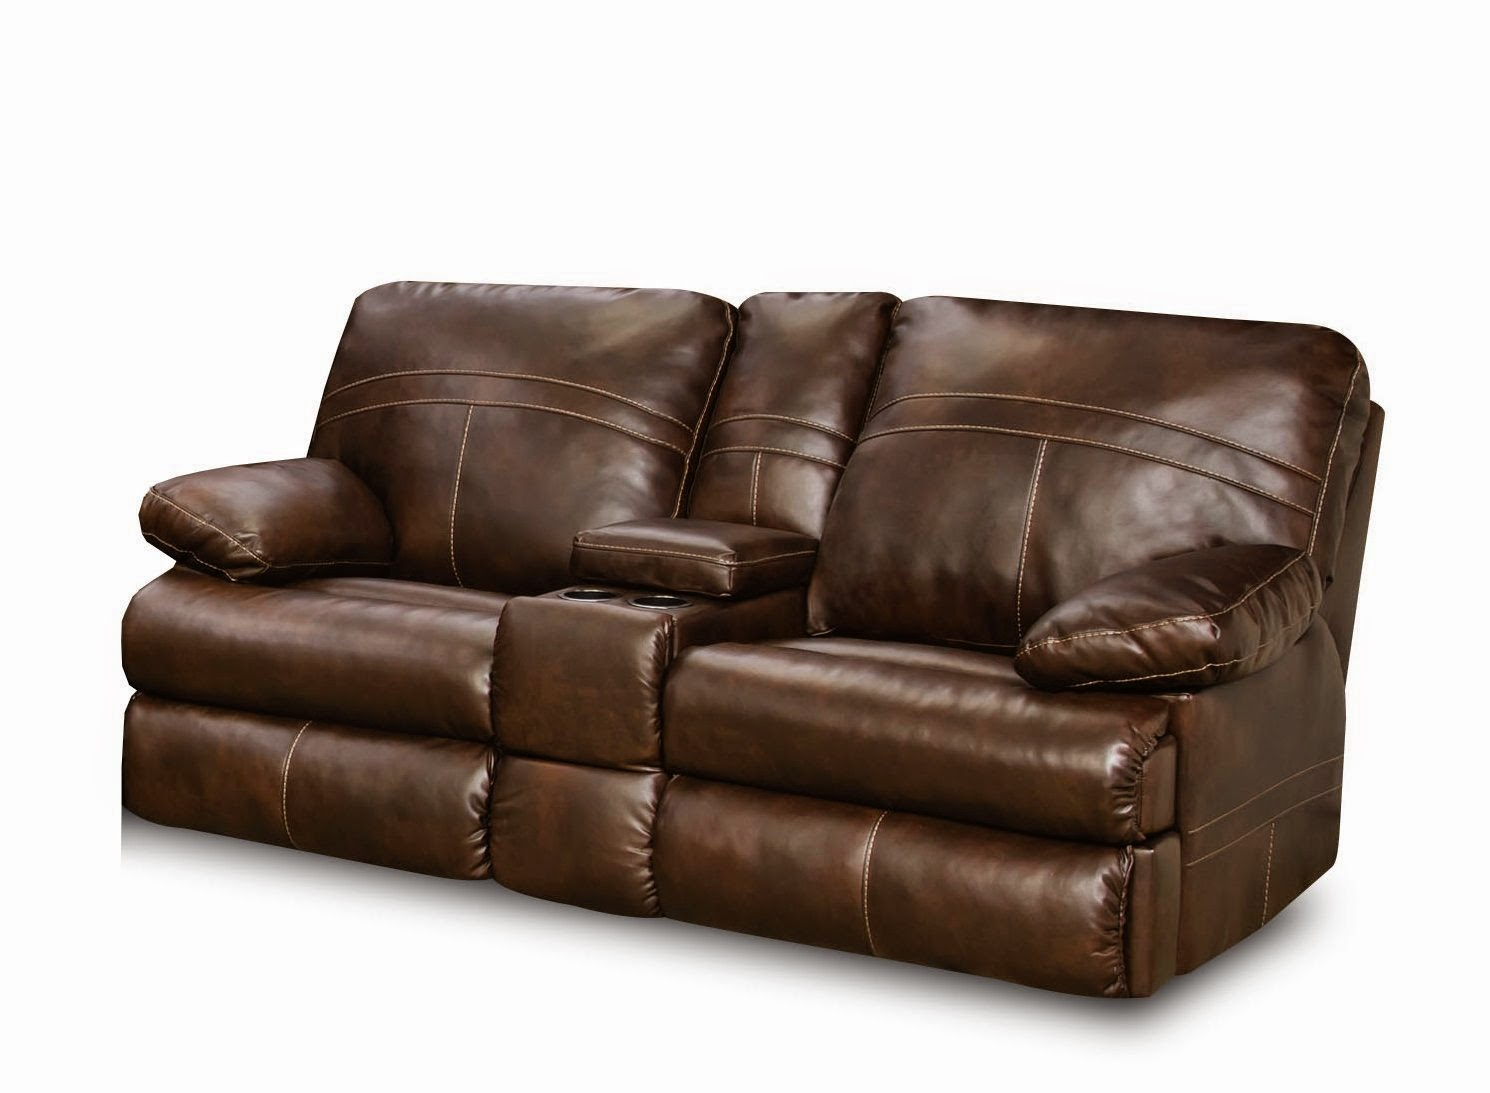 Leather Recliner Sectional Sofa Where To Get A Cheap The Best Reclining Reviews Simmons